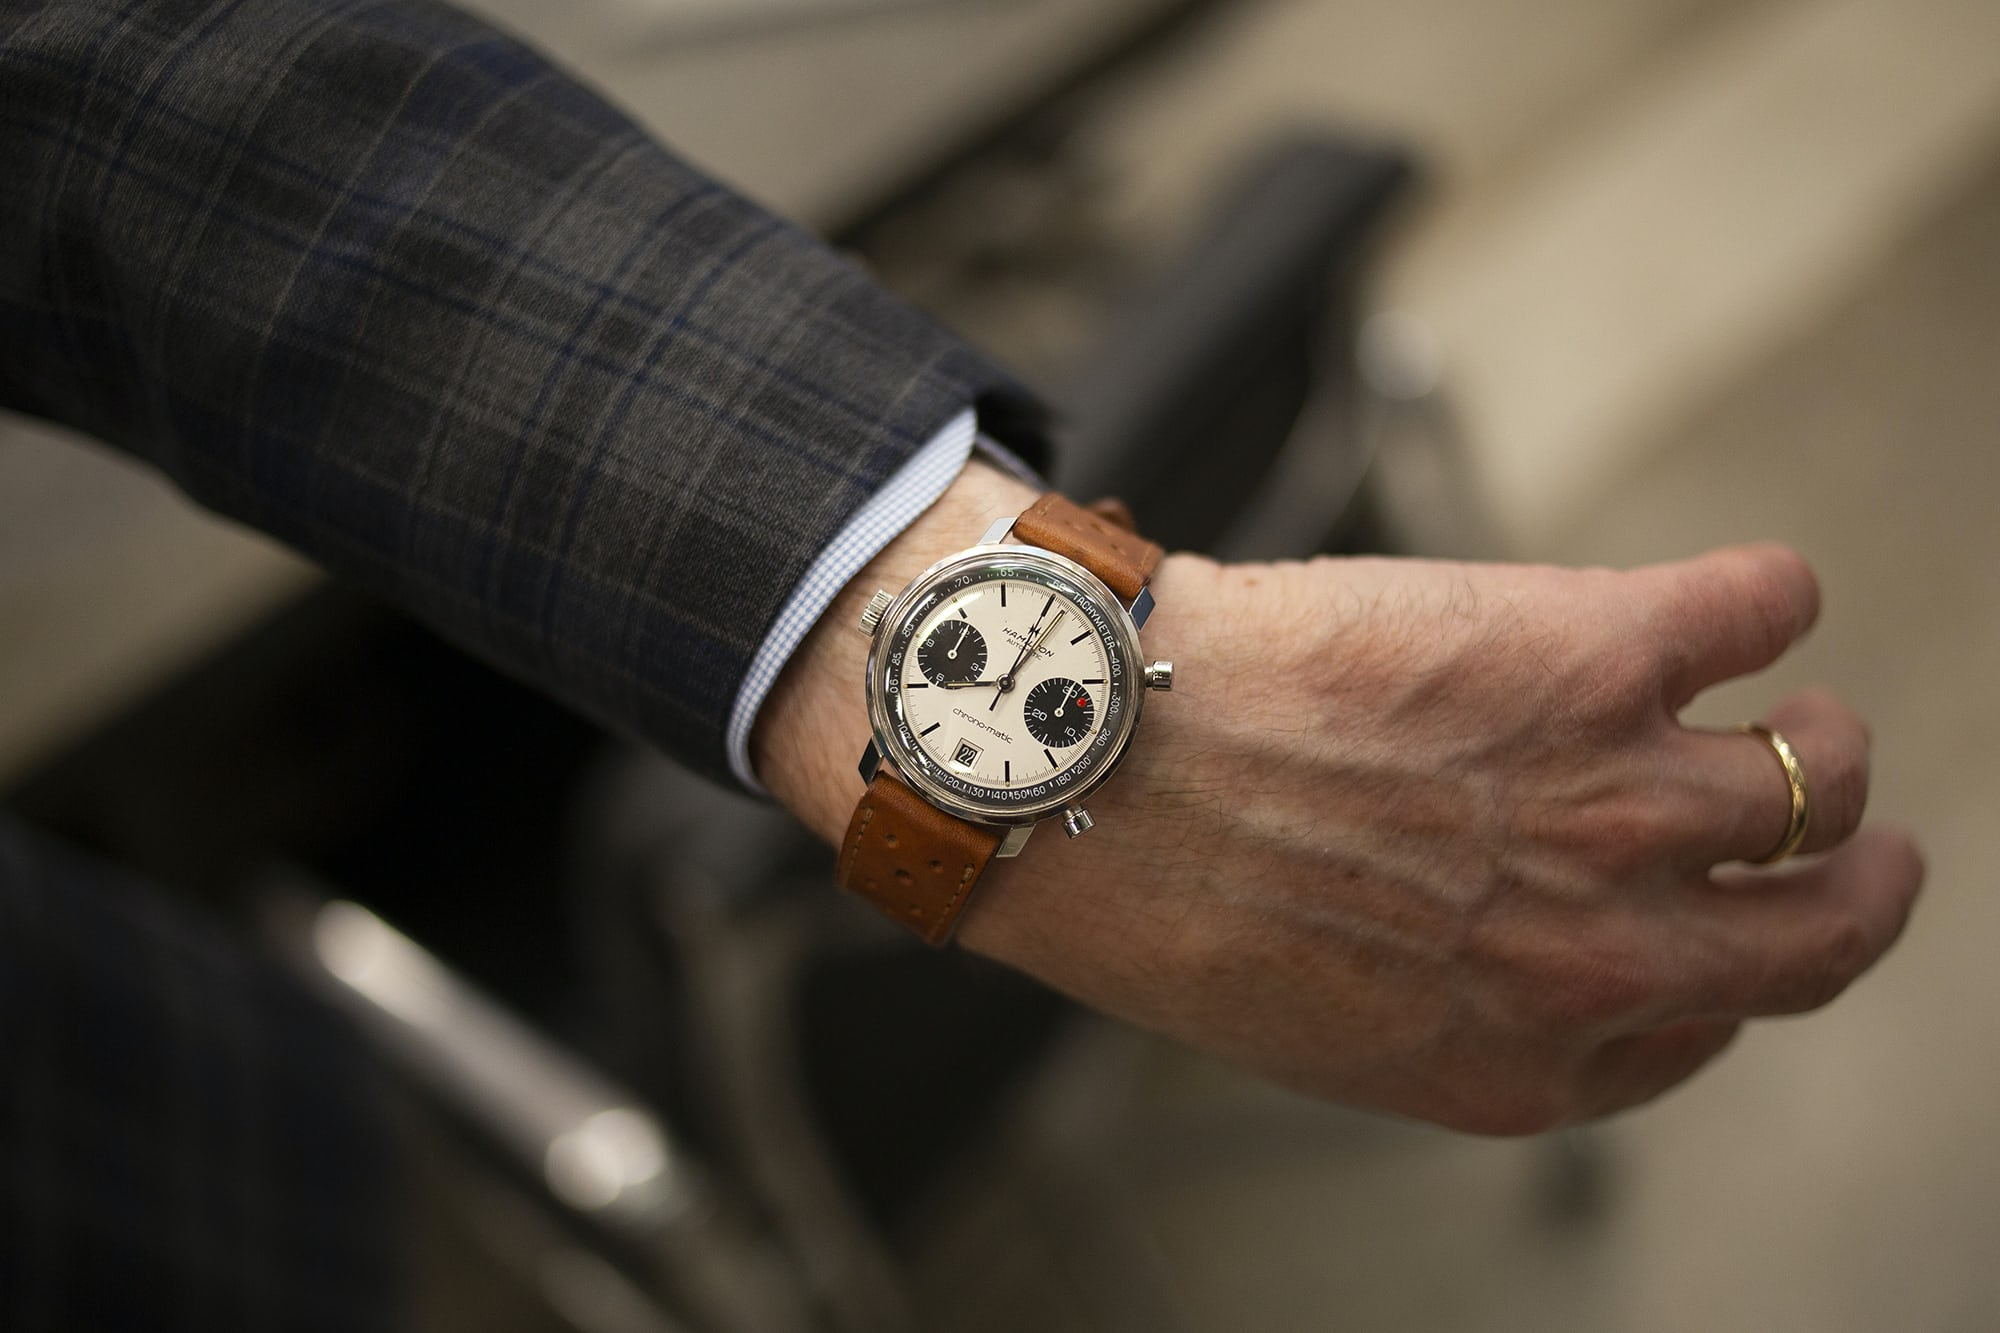 Photo Report: The Watches And Cars Of The HODINKEE Pop-Up At The UTA Artist Space In Los Angeles  3H0A0554 copy